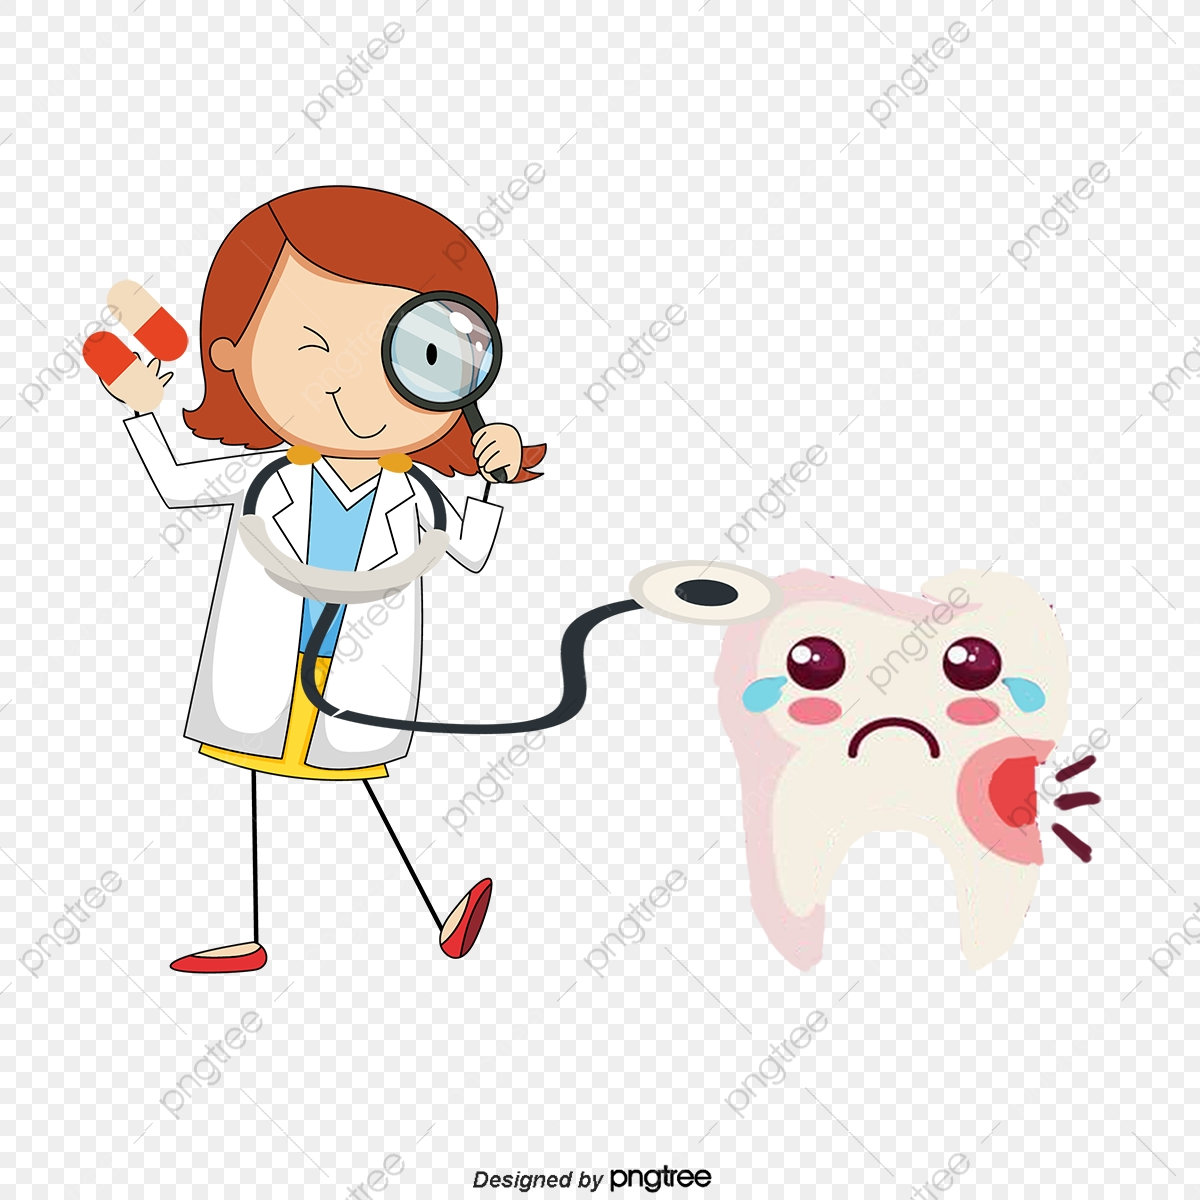 Tooth clipart dentist visit.